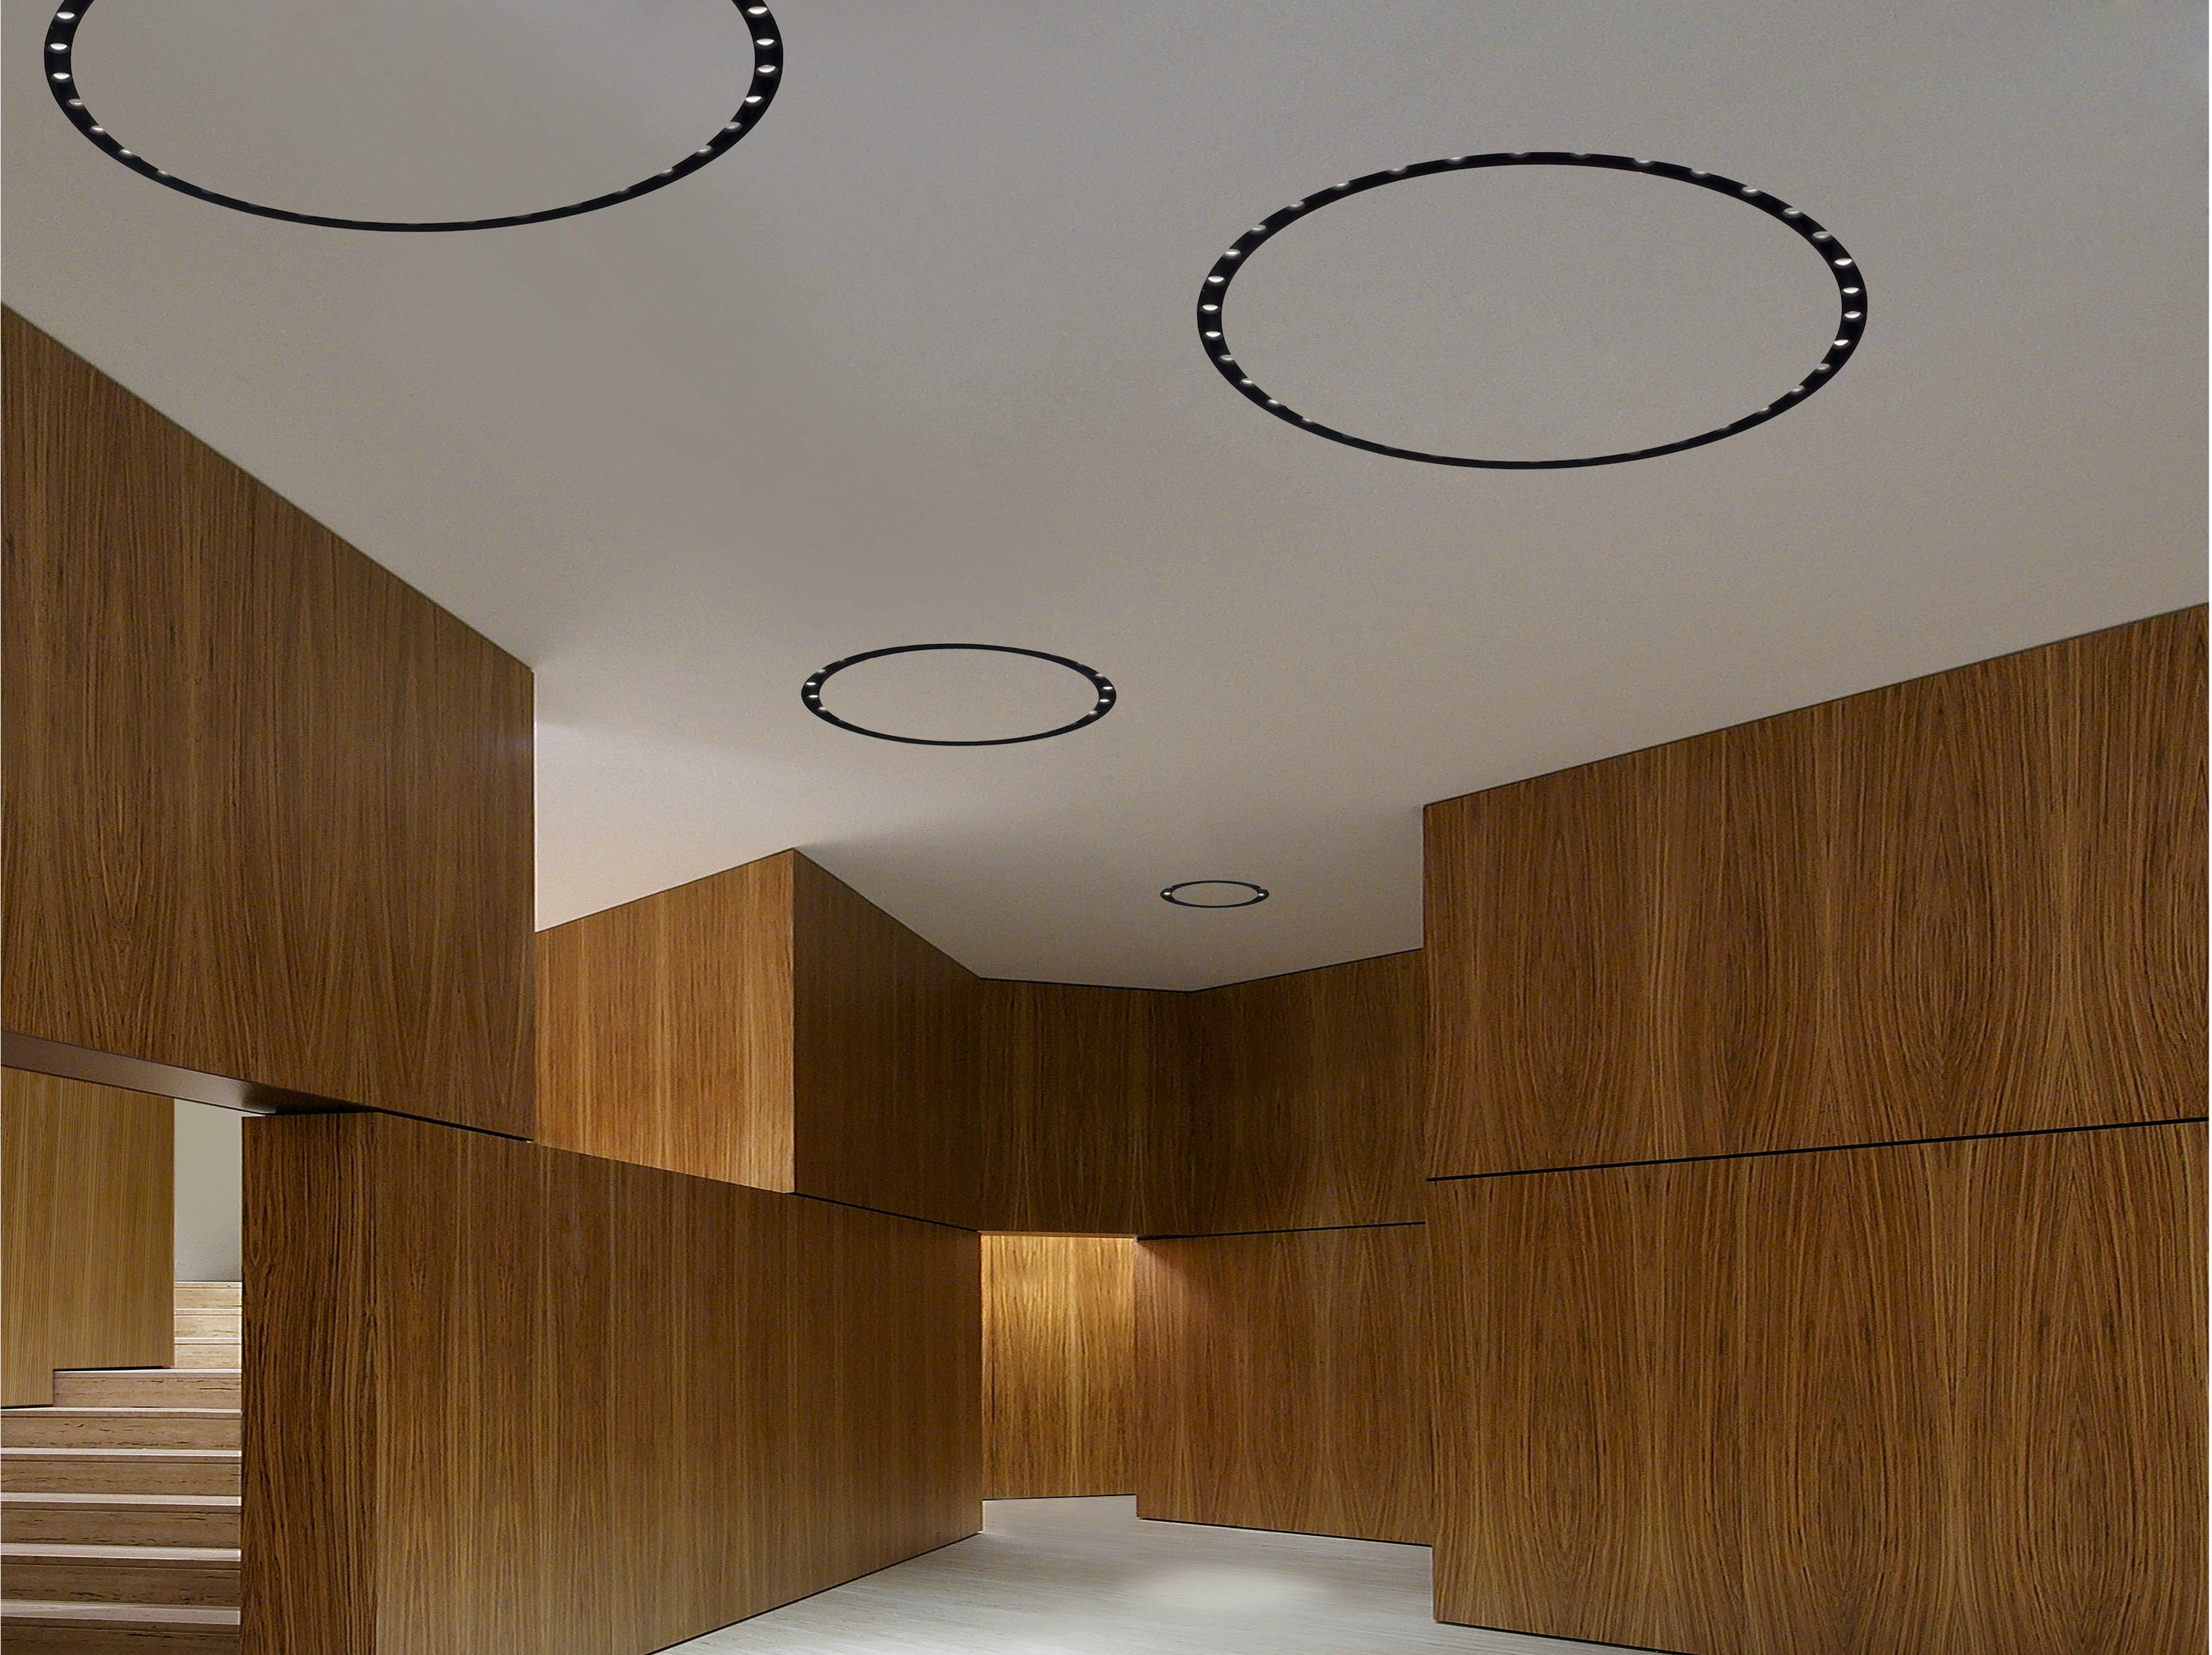 Built In Lights For Ceiling : Built in lighting profile for led modules circle of light